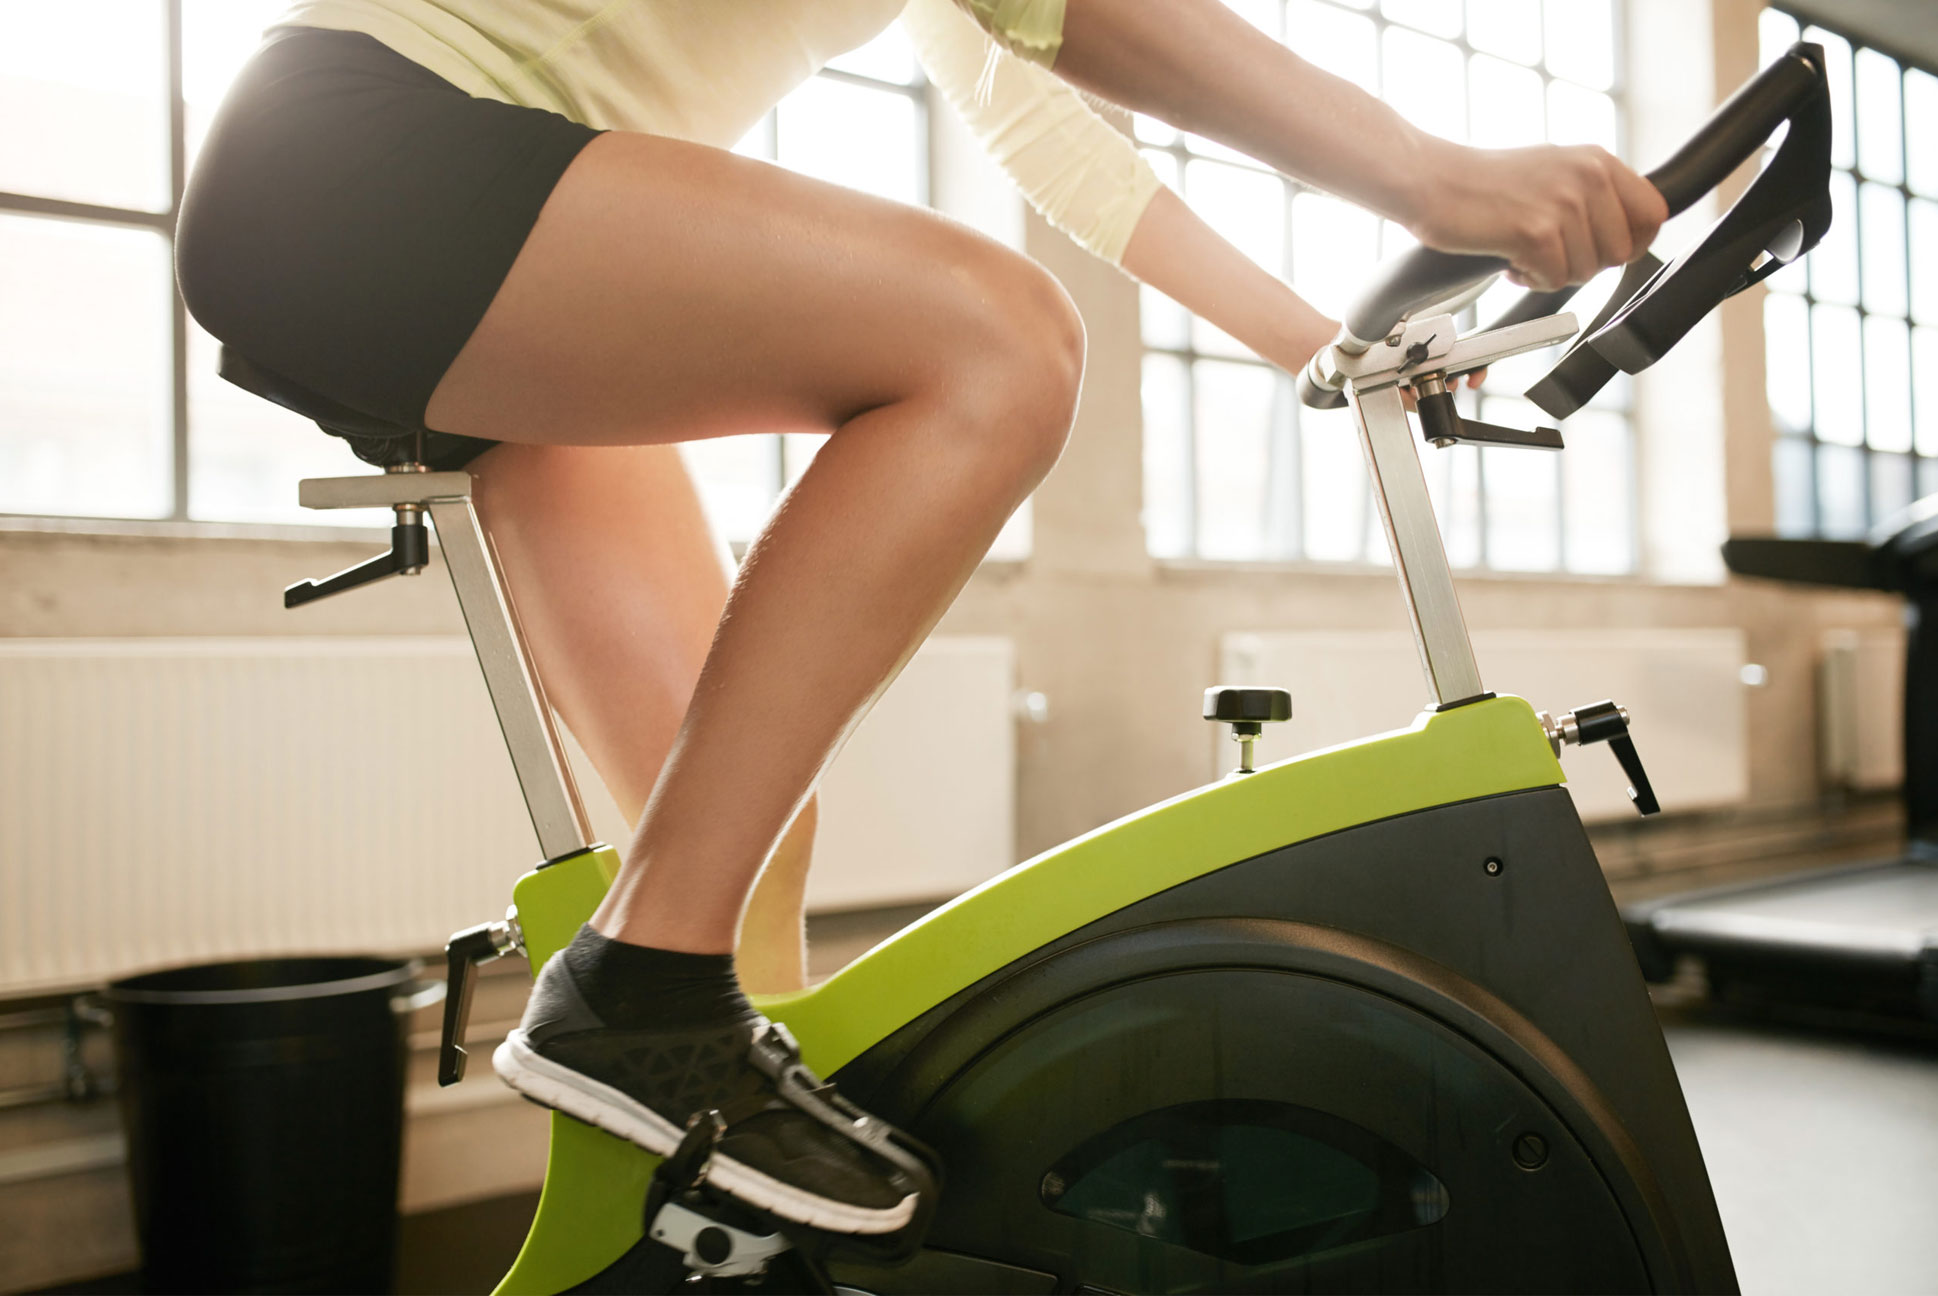 Are You Using Proper Cycling Form? 4 Tips to Avoid Injury and Improve Performance